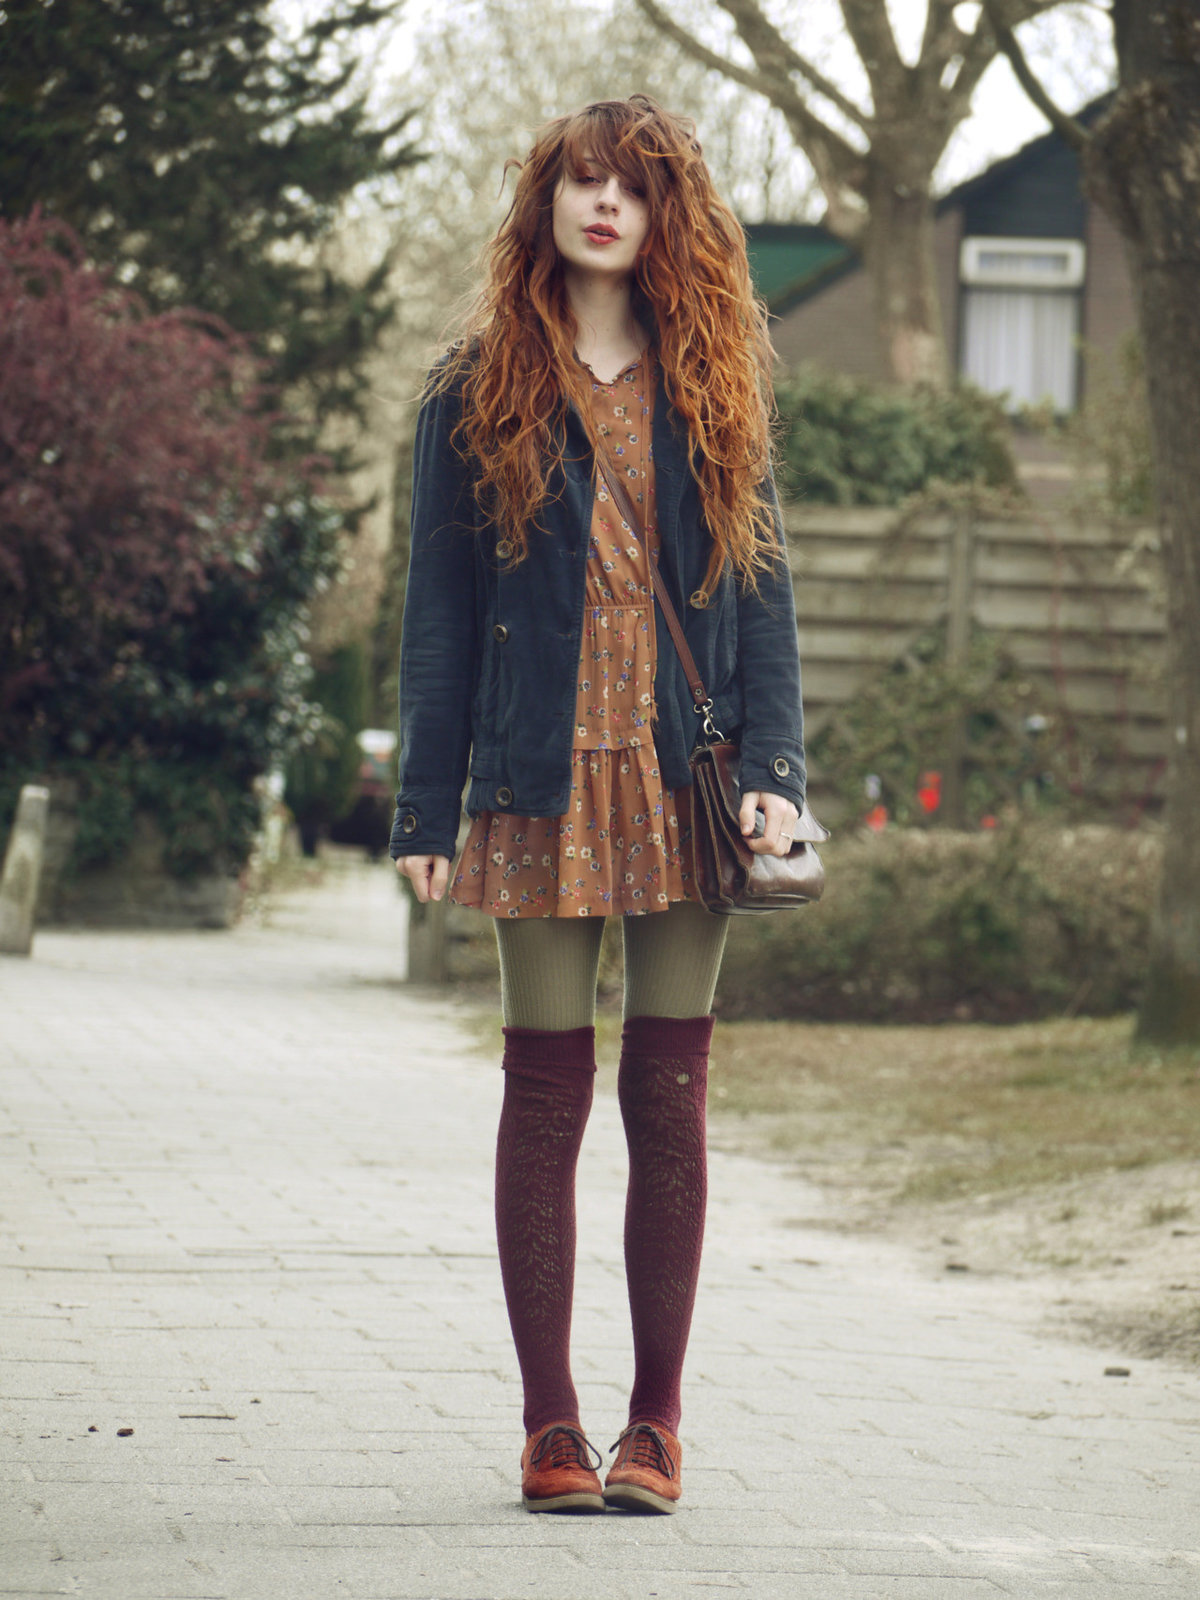 Winter vintage fashion ideas Vintage Looks: A Collection Of Amazing Vintage Outfits For Winter